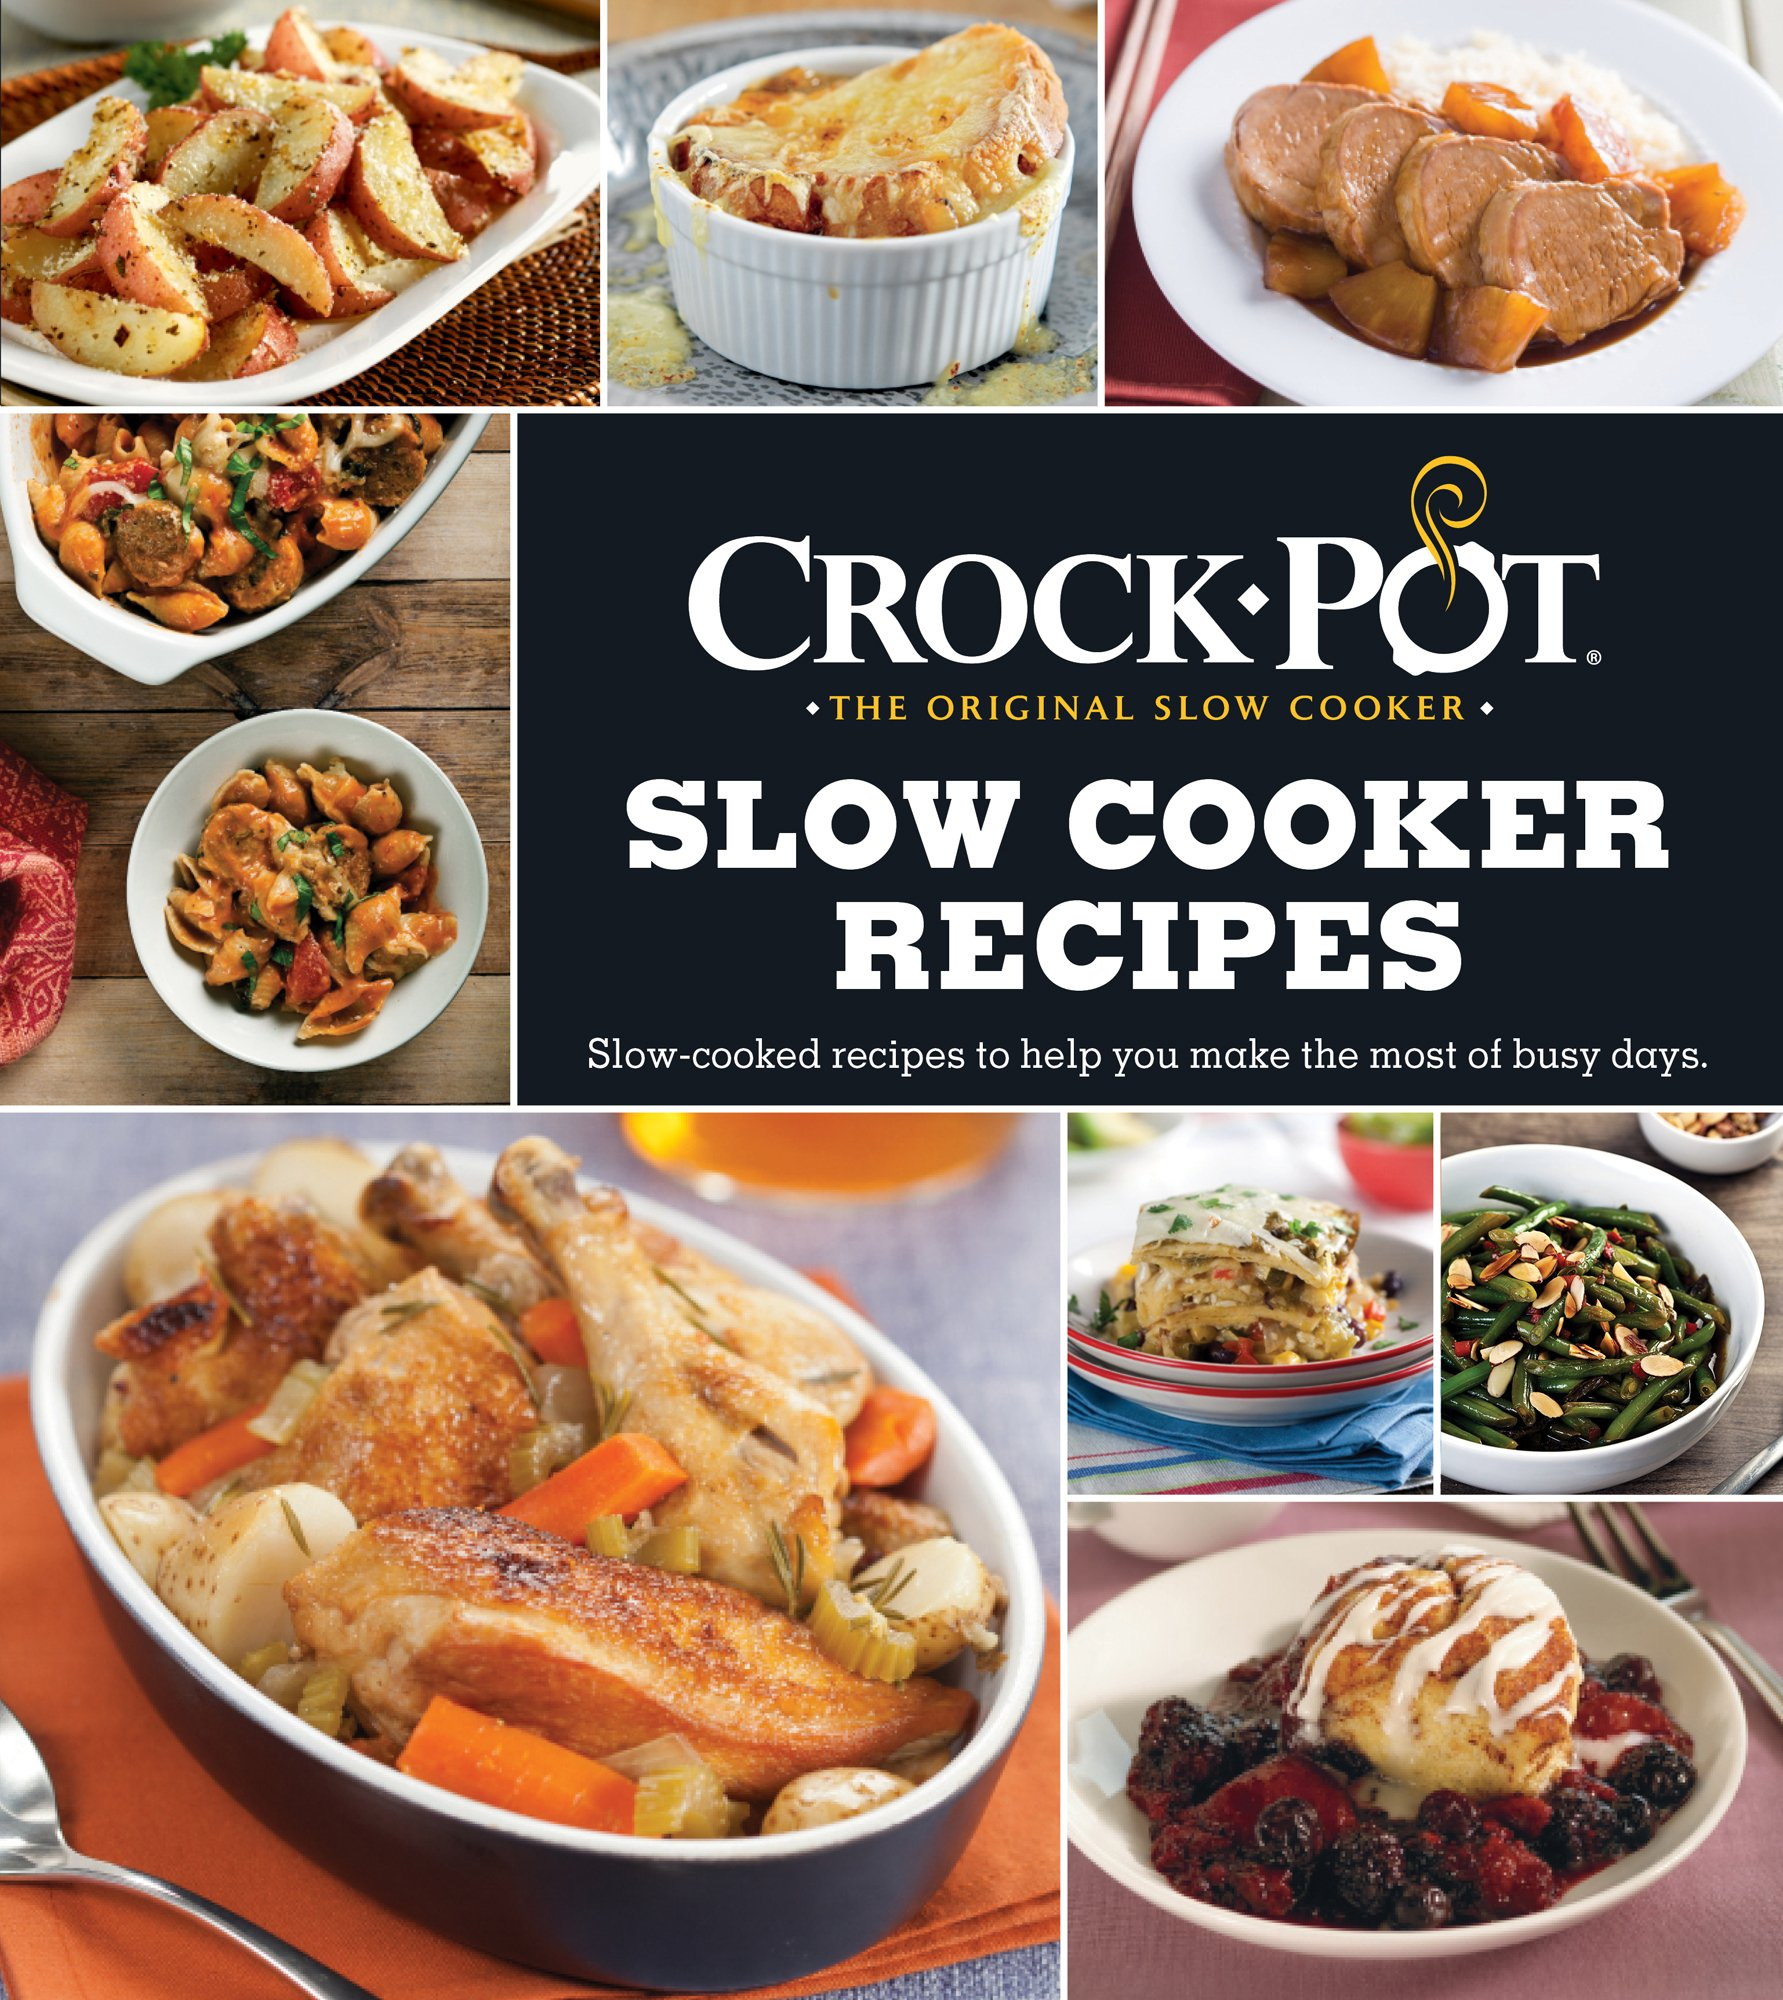 CROCK-POT Slow Cooker Recipes: Slow-Cooked Recipes to Help You Make the Most  of Busy Days (3 Ring Binder): Publications International: 9781640302372:  Books ...